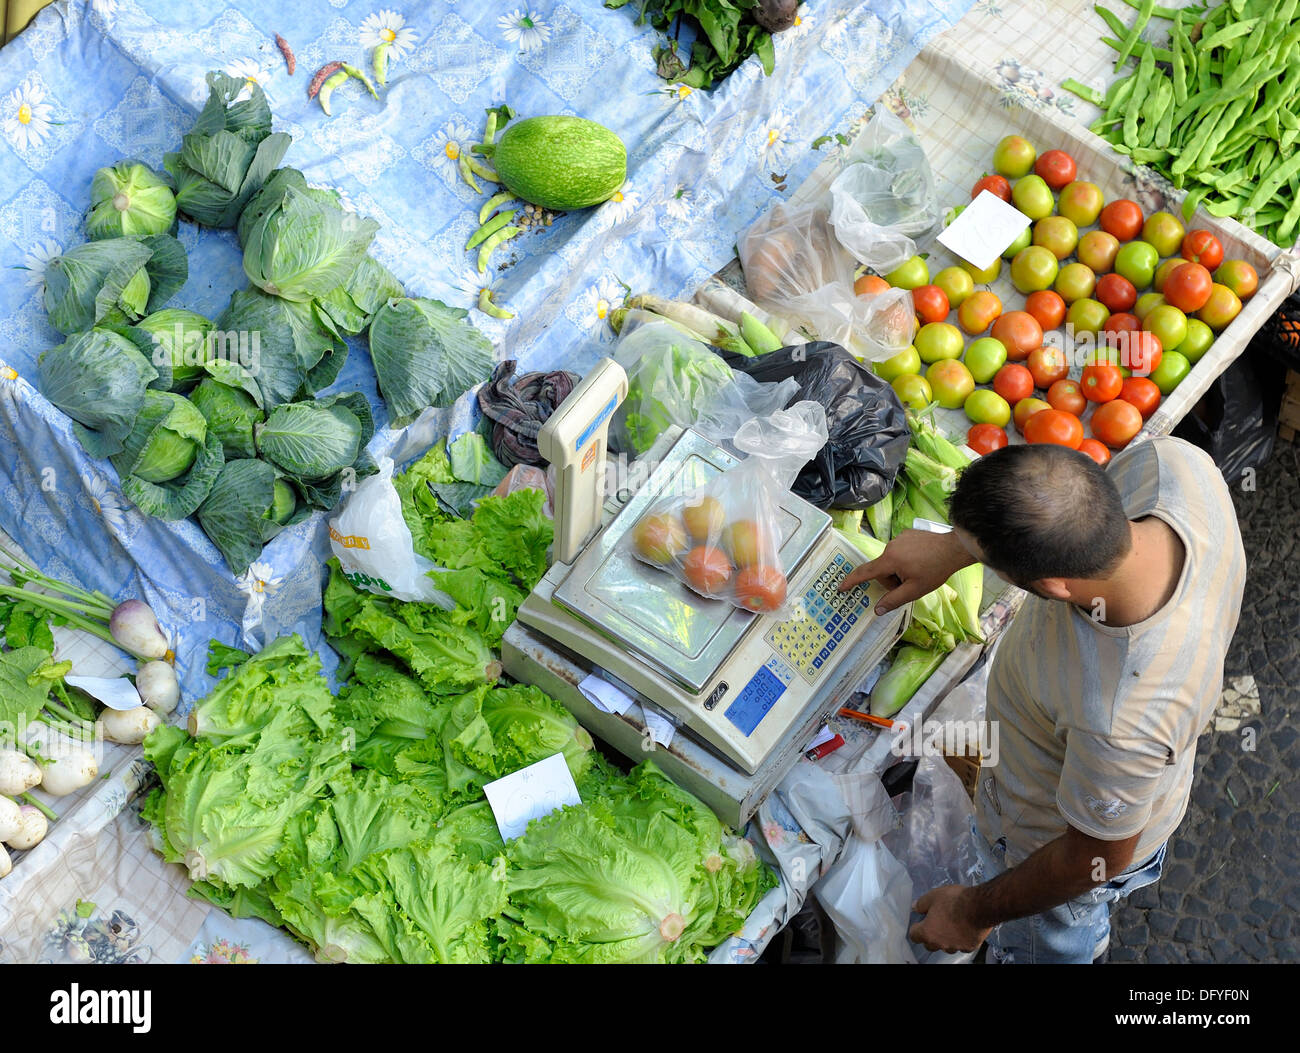 A man on a fruit and vegetable market stall using weighing scales Funchal Madeira Portugal - Stock Image